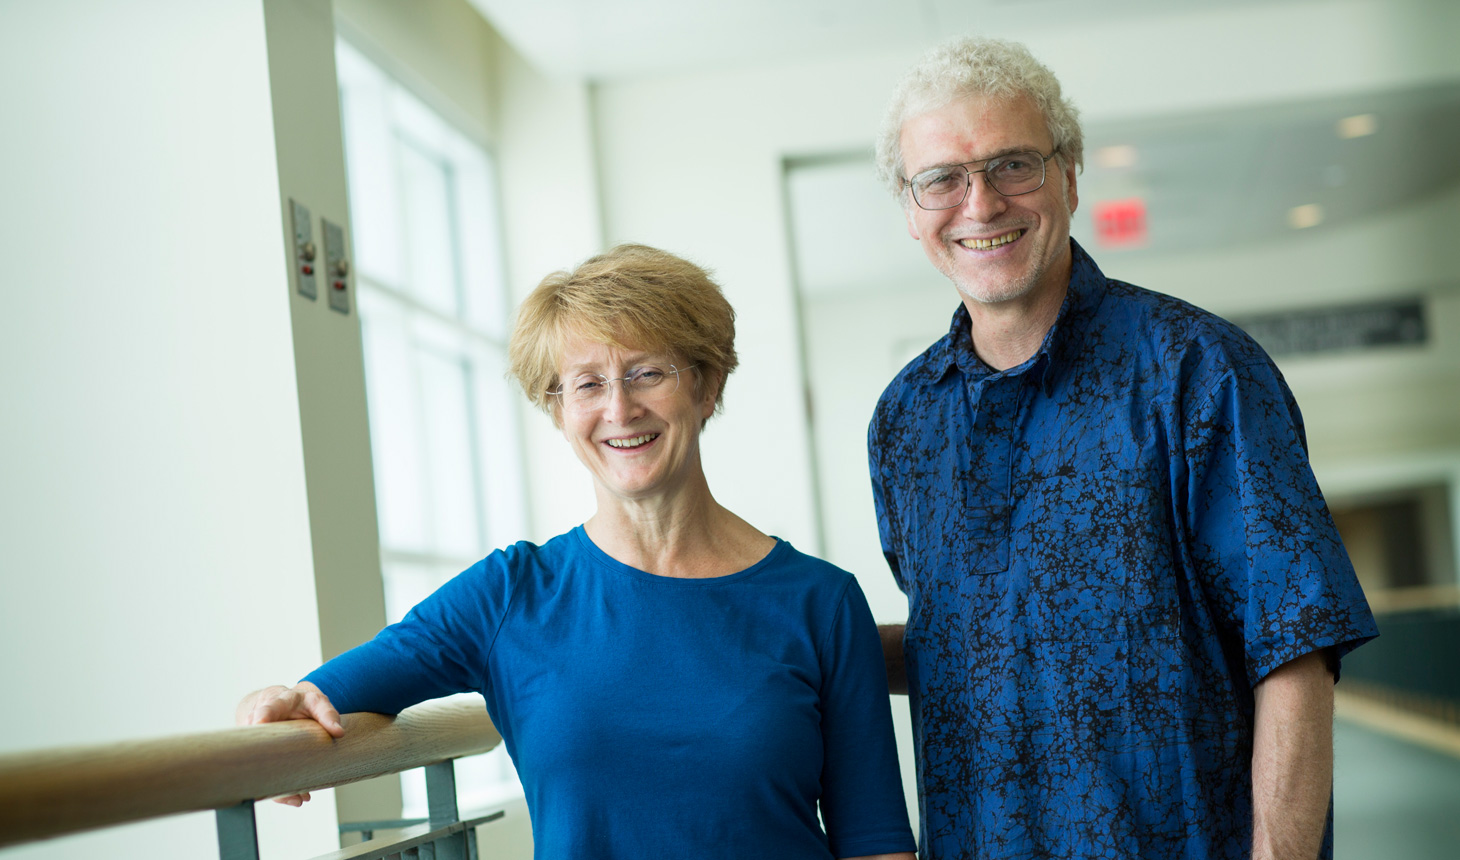 David J. Bzik, PhD, a professor of microbiology and immunology at the Geisel School of Medicine at Dartmouth, and Barbara Fox, a senior research associate of microbiology and immunology.